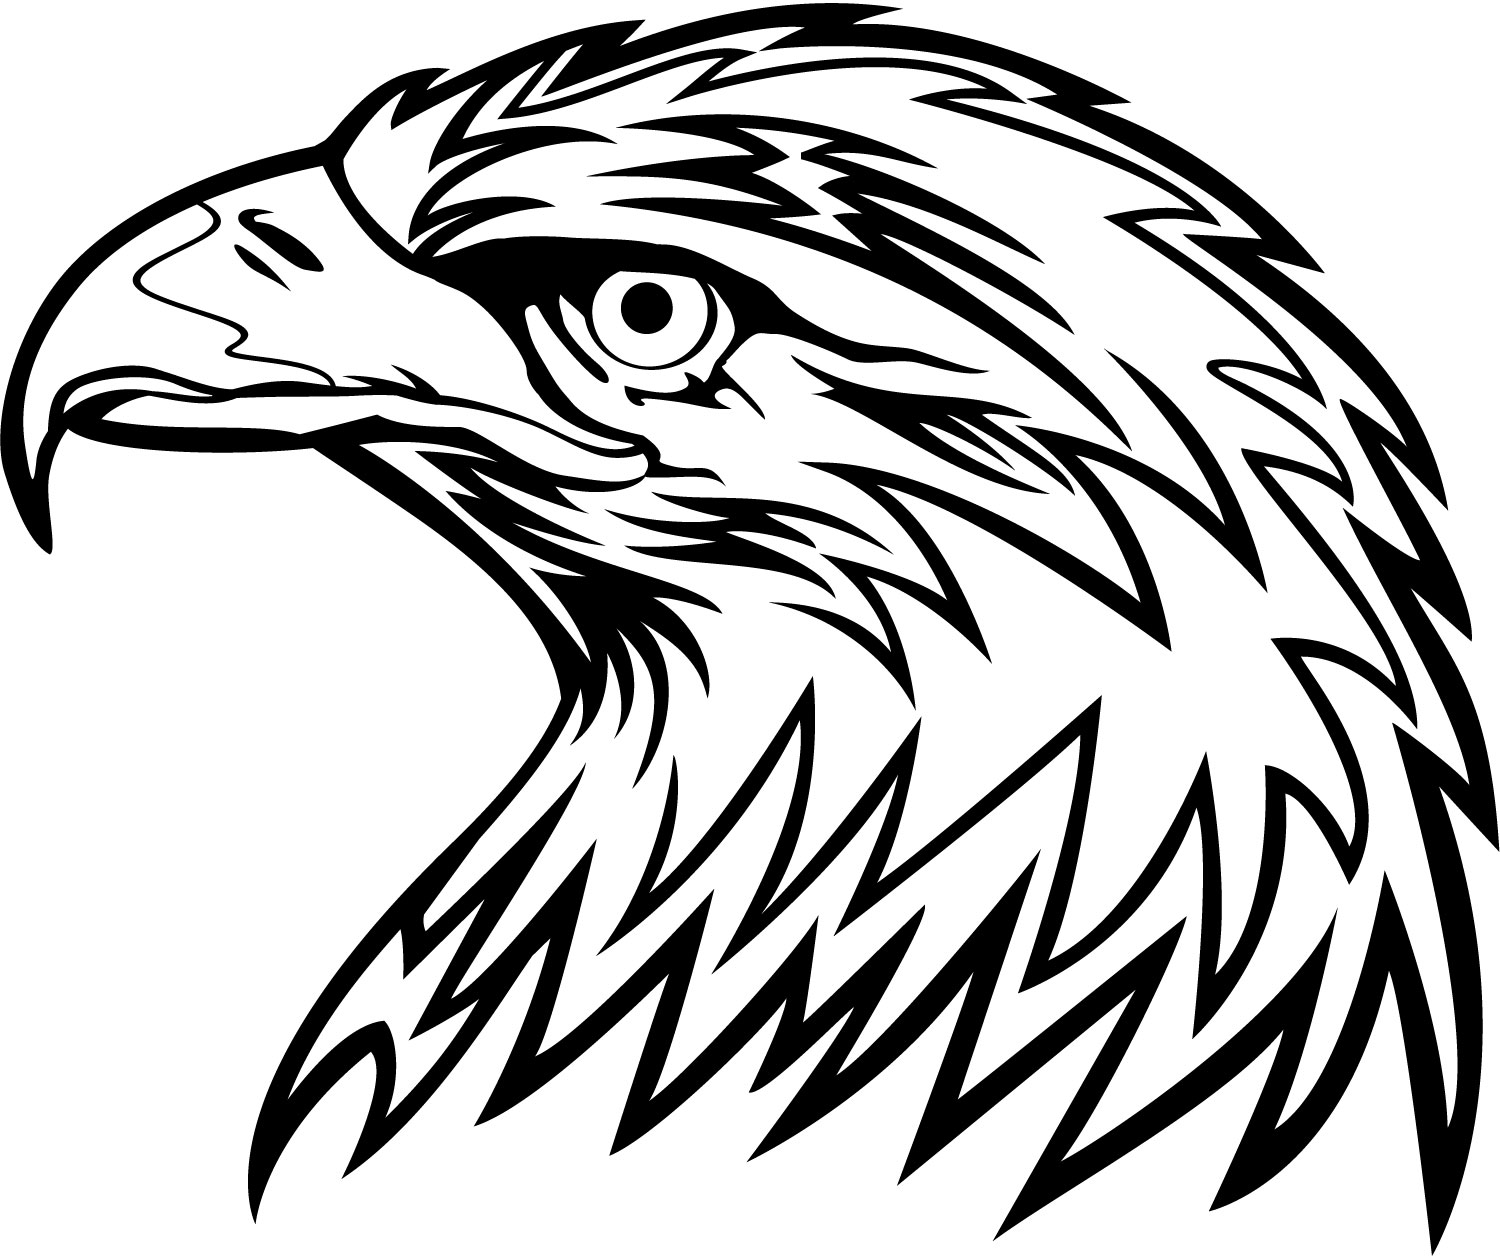 Eagle Clipart | Clipart Panda - Free Clipart Images